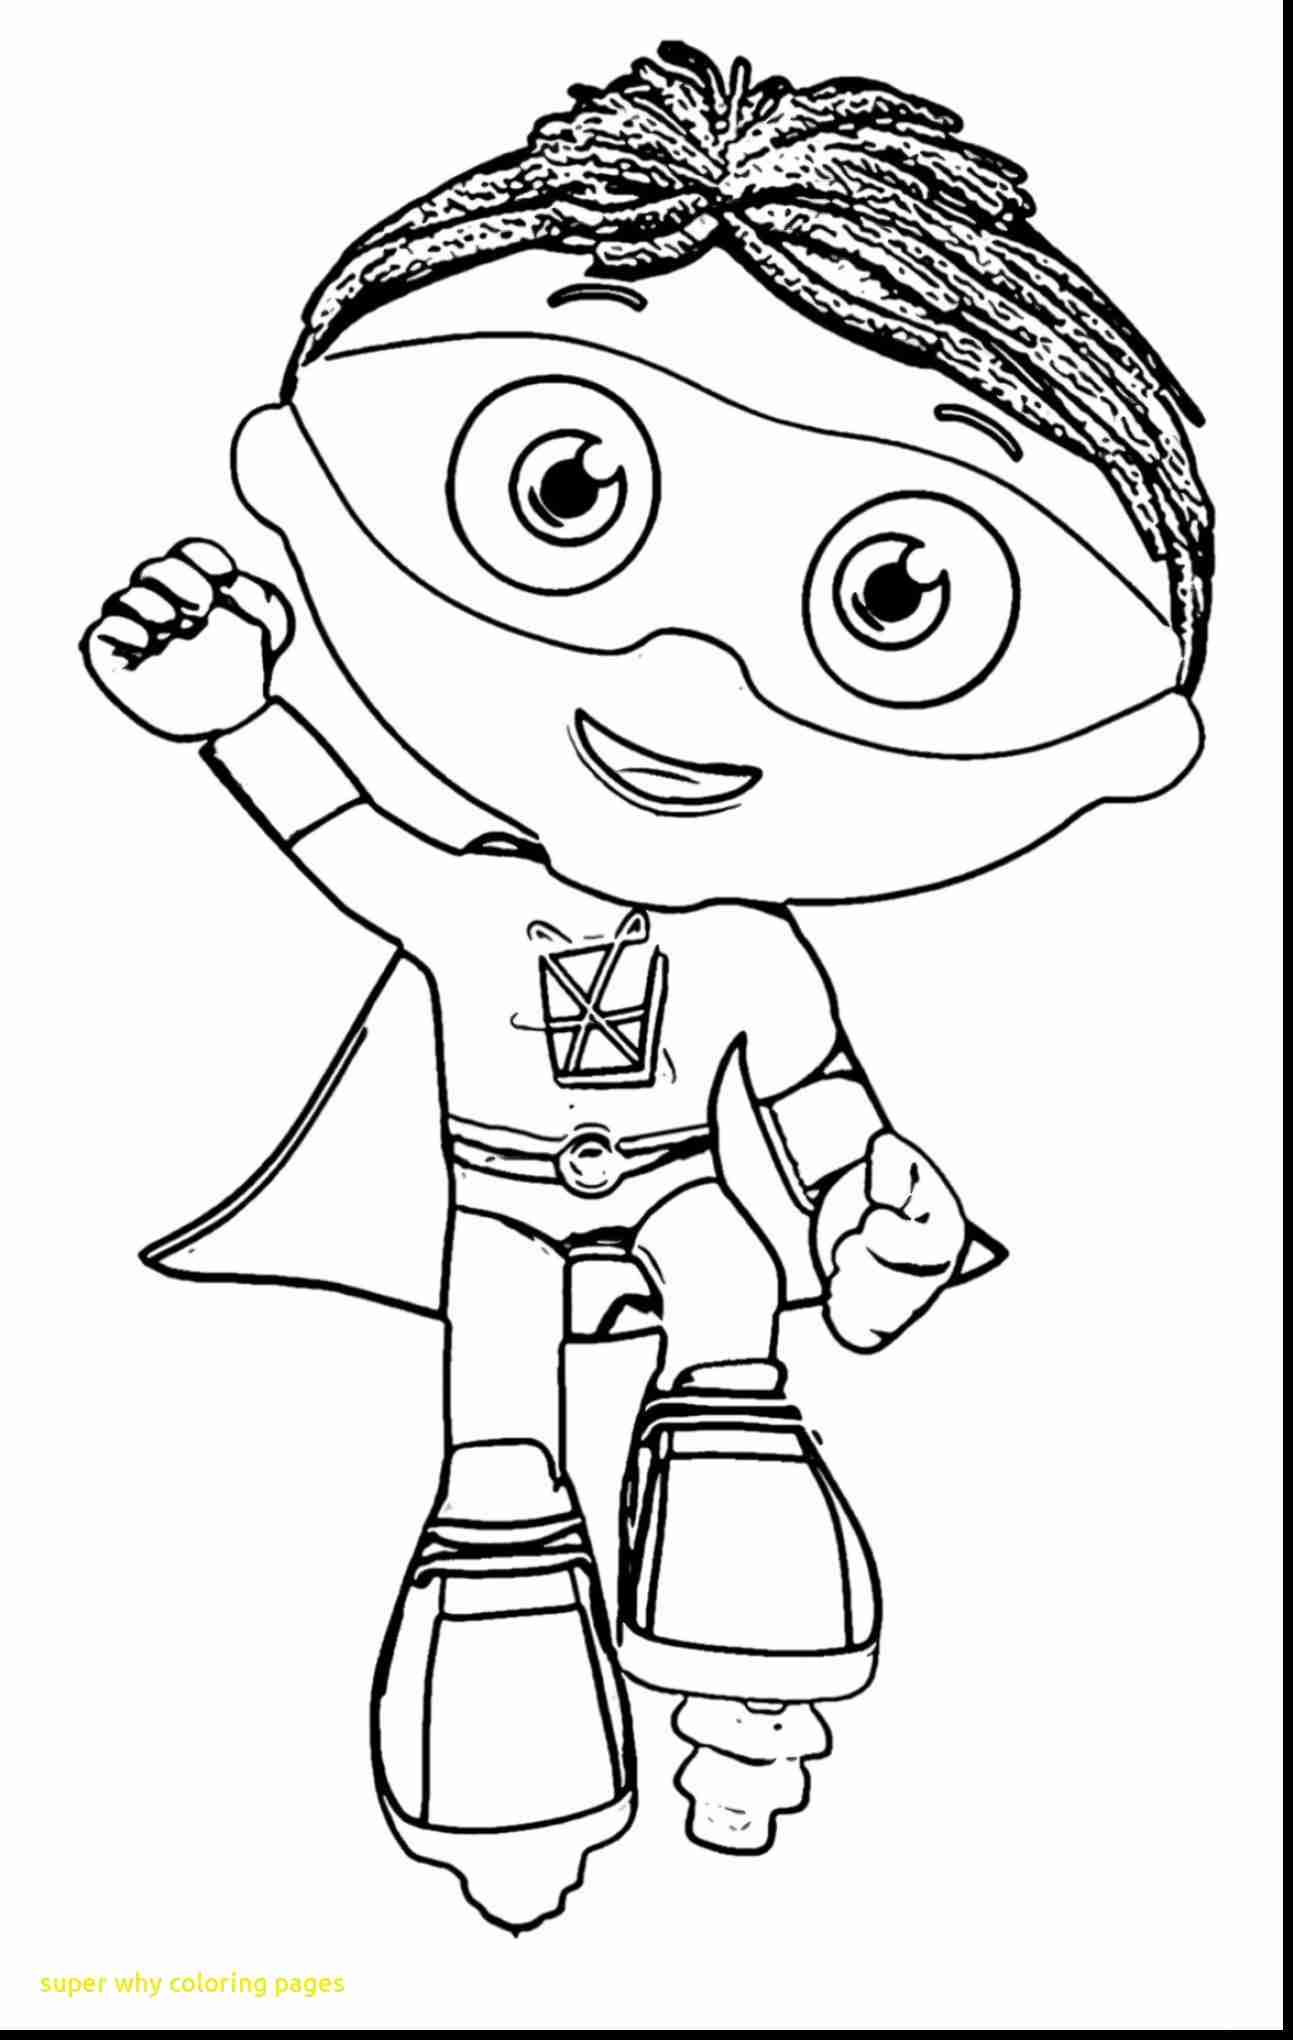 Super Why Coloring Pages At Getdrawings